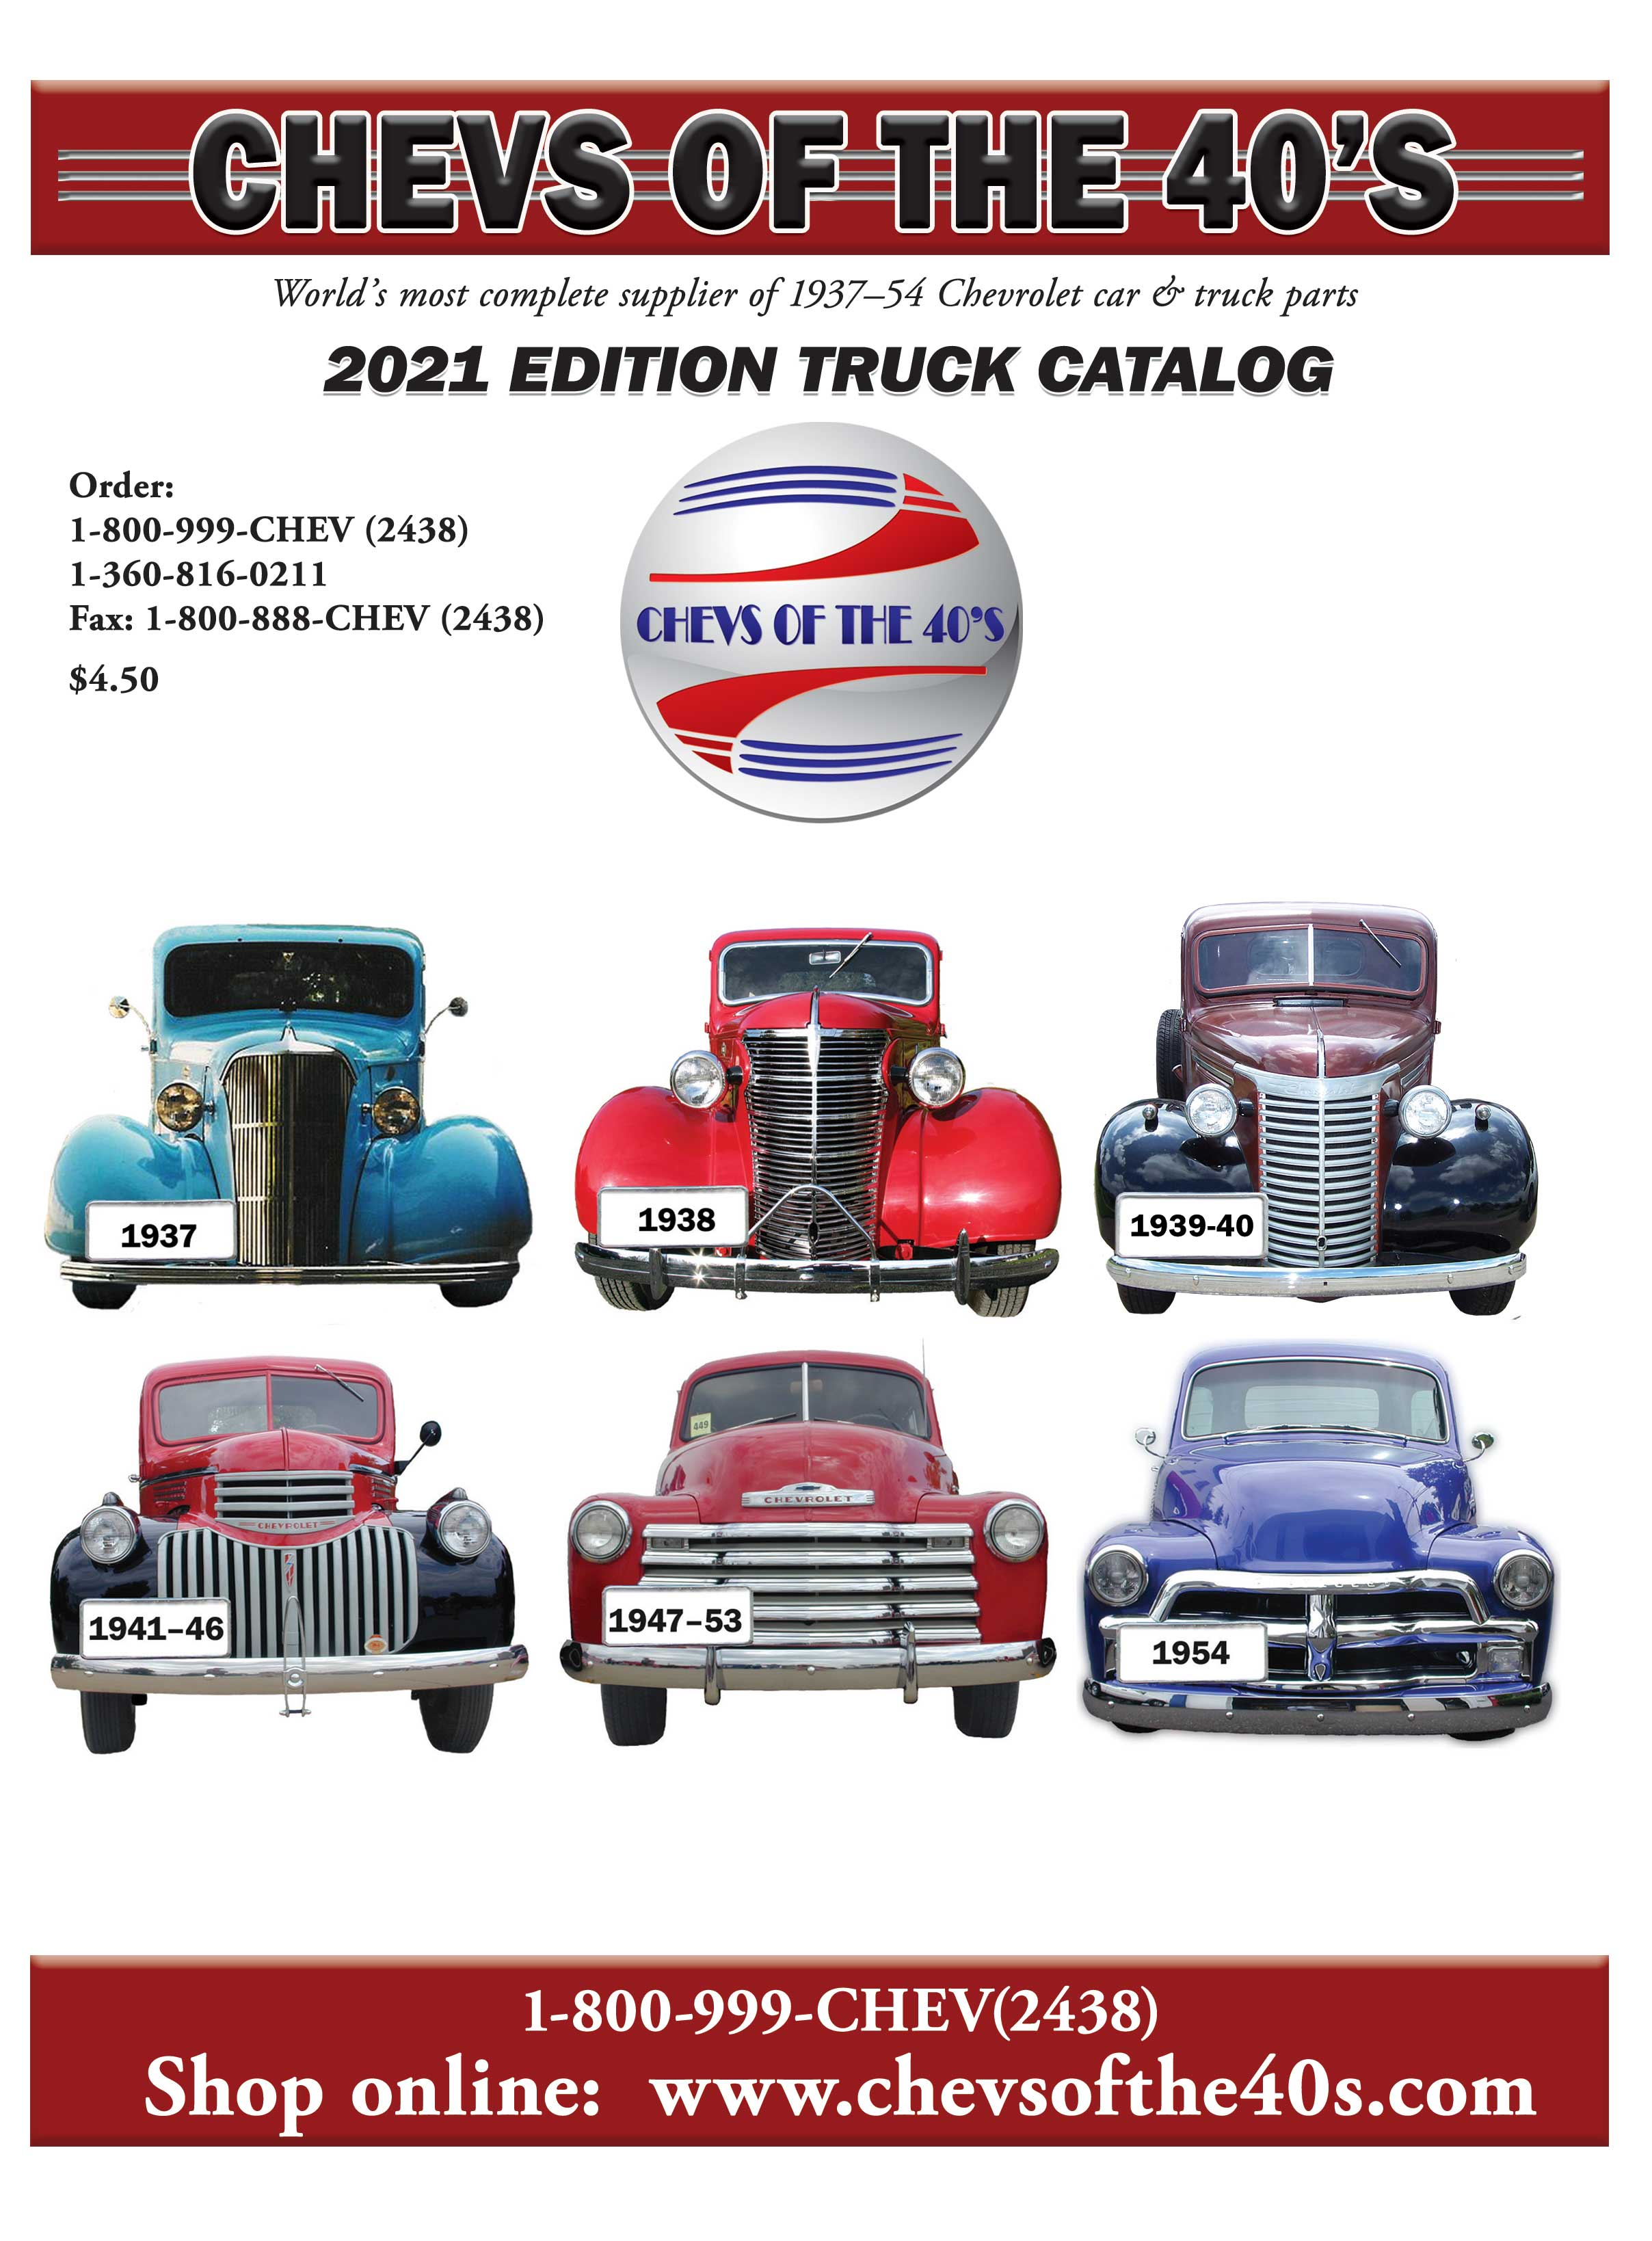 Chevs of the 40s 1937 1954 chevrolet classic restoration parts chevs truck catalog 1betcityfo Gallery